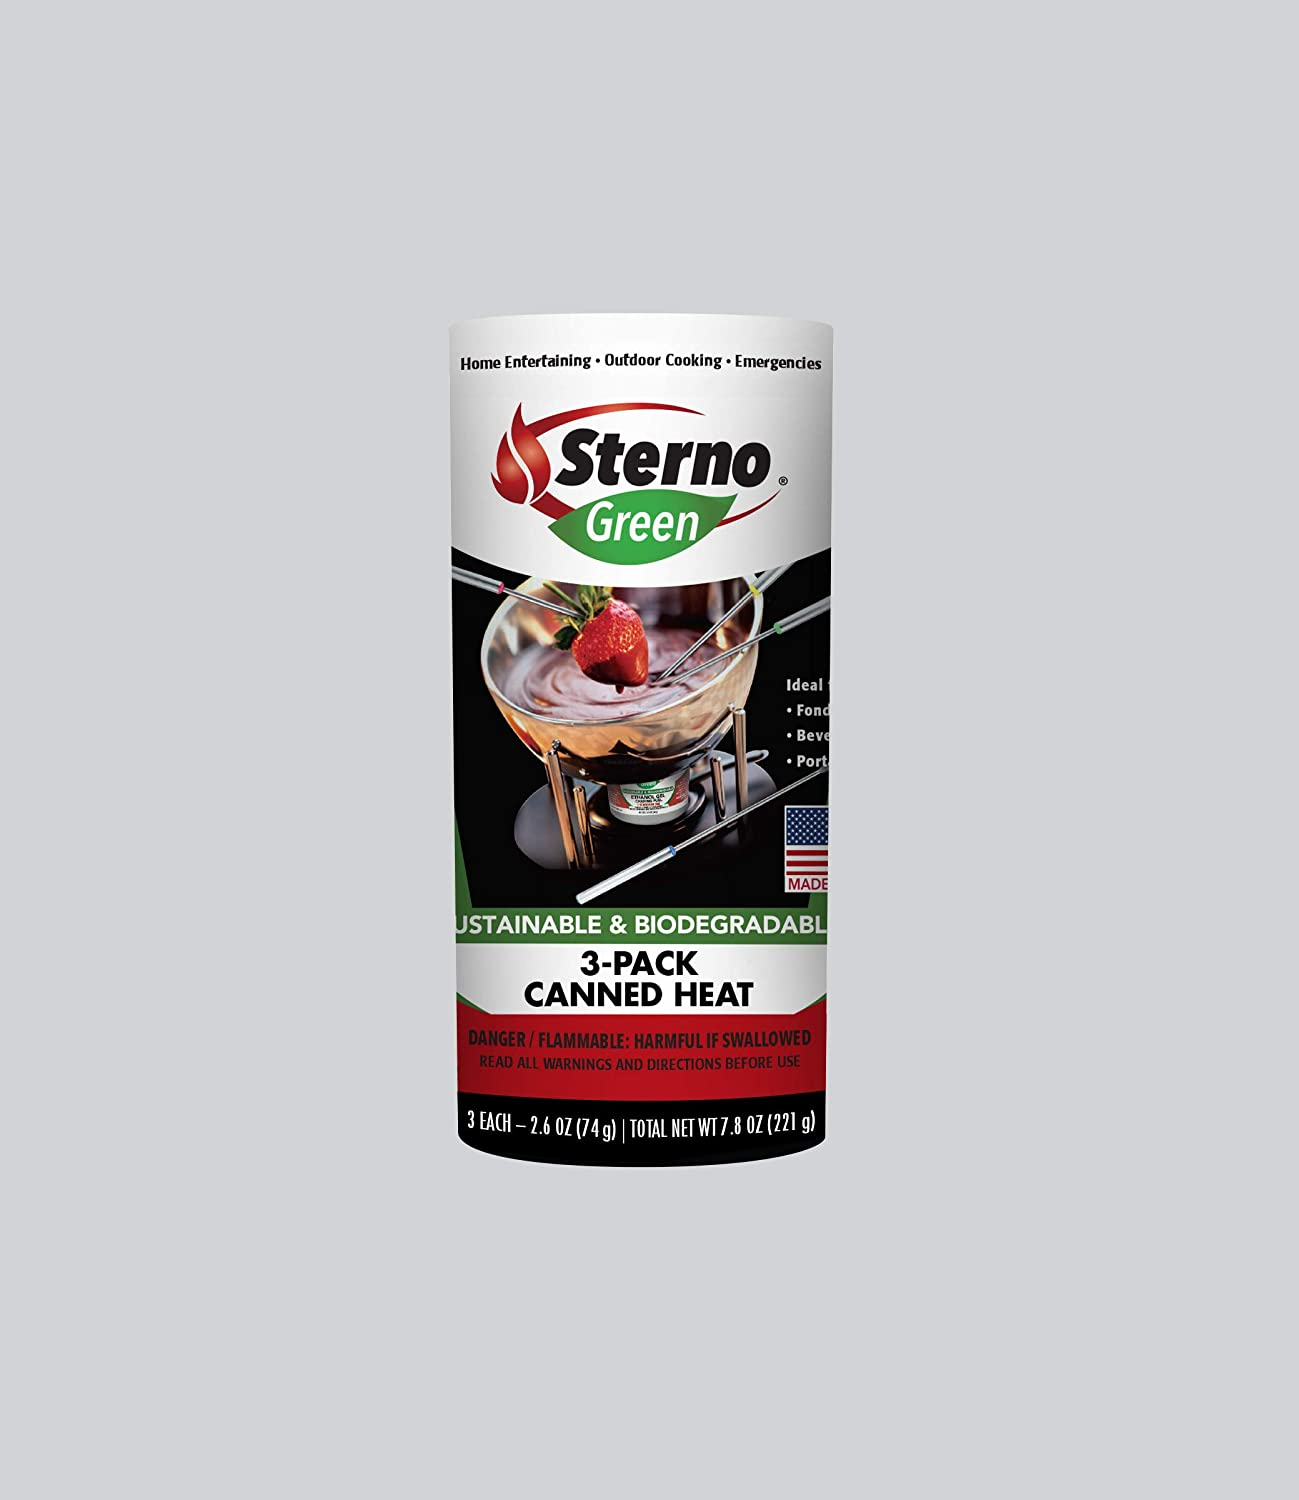 Sterno Entertainment Cooking Fuel, 3-Pack Canned Heat, 2.6 oz, Red